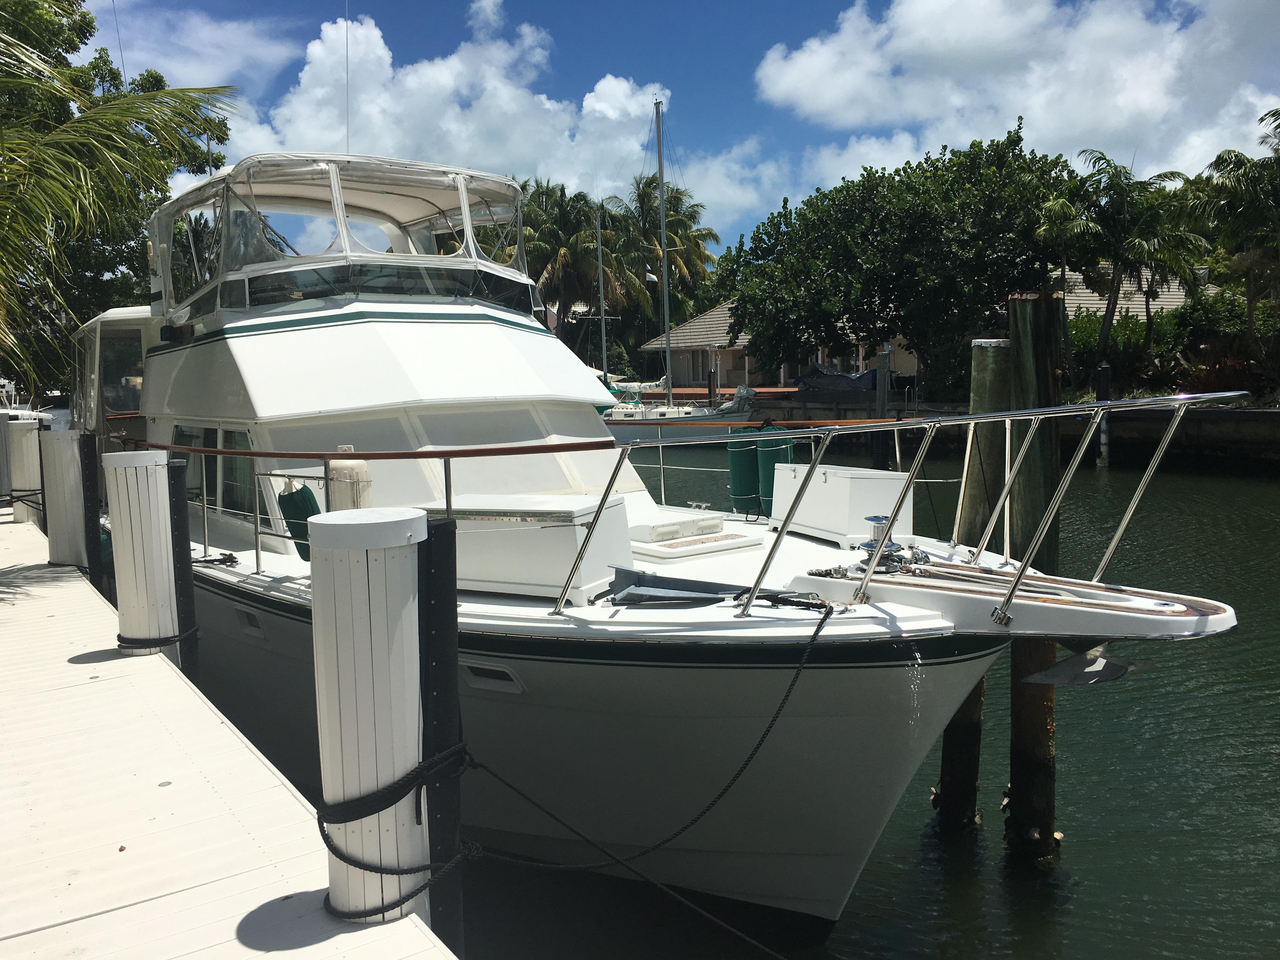 1984 used hatteras 48 motor yacht motor yacht for sale for Used motor yachts for sale in florida